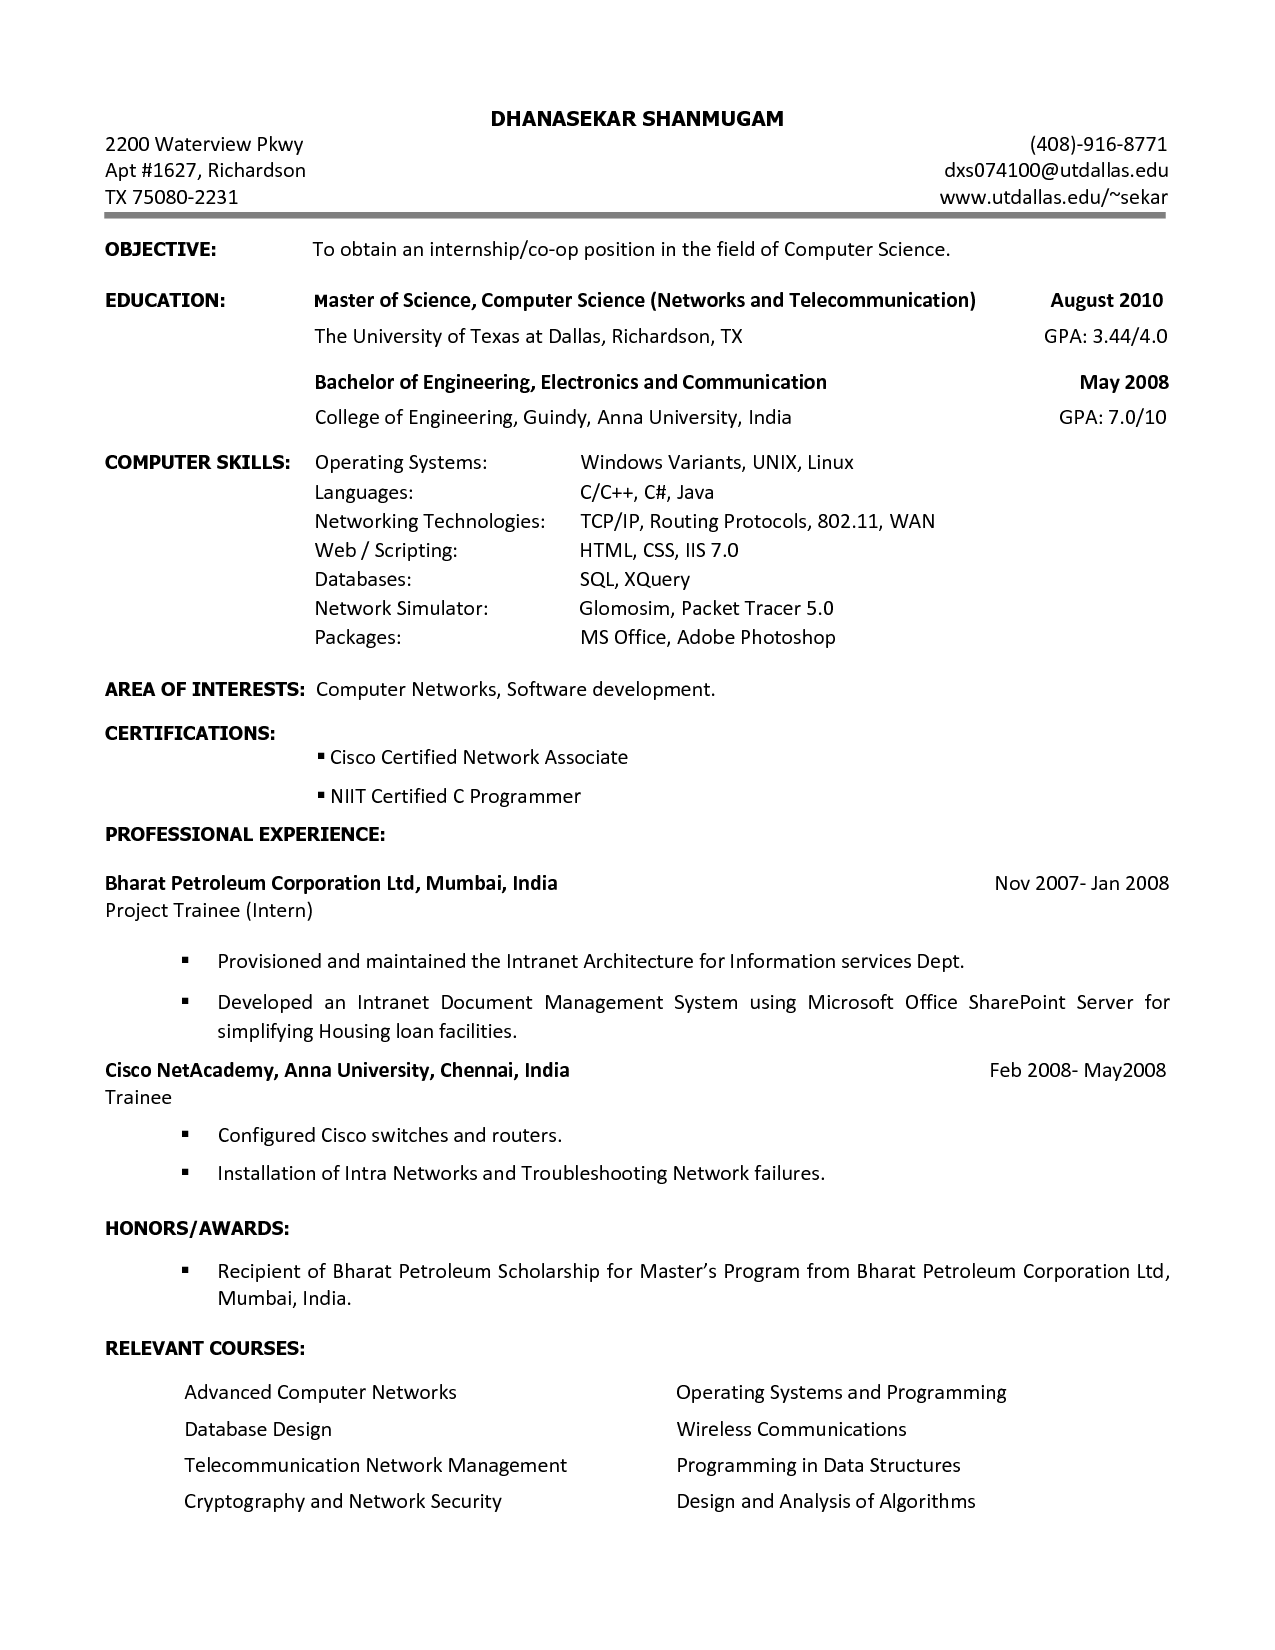 Resume Builder Resume Builder Free Download free resume builder